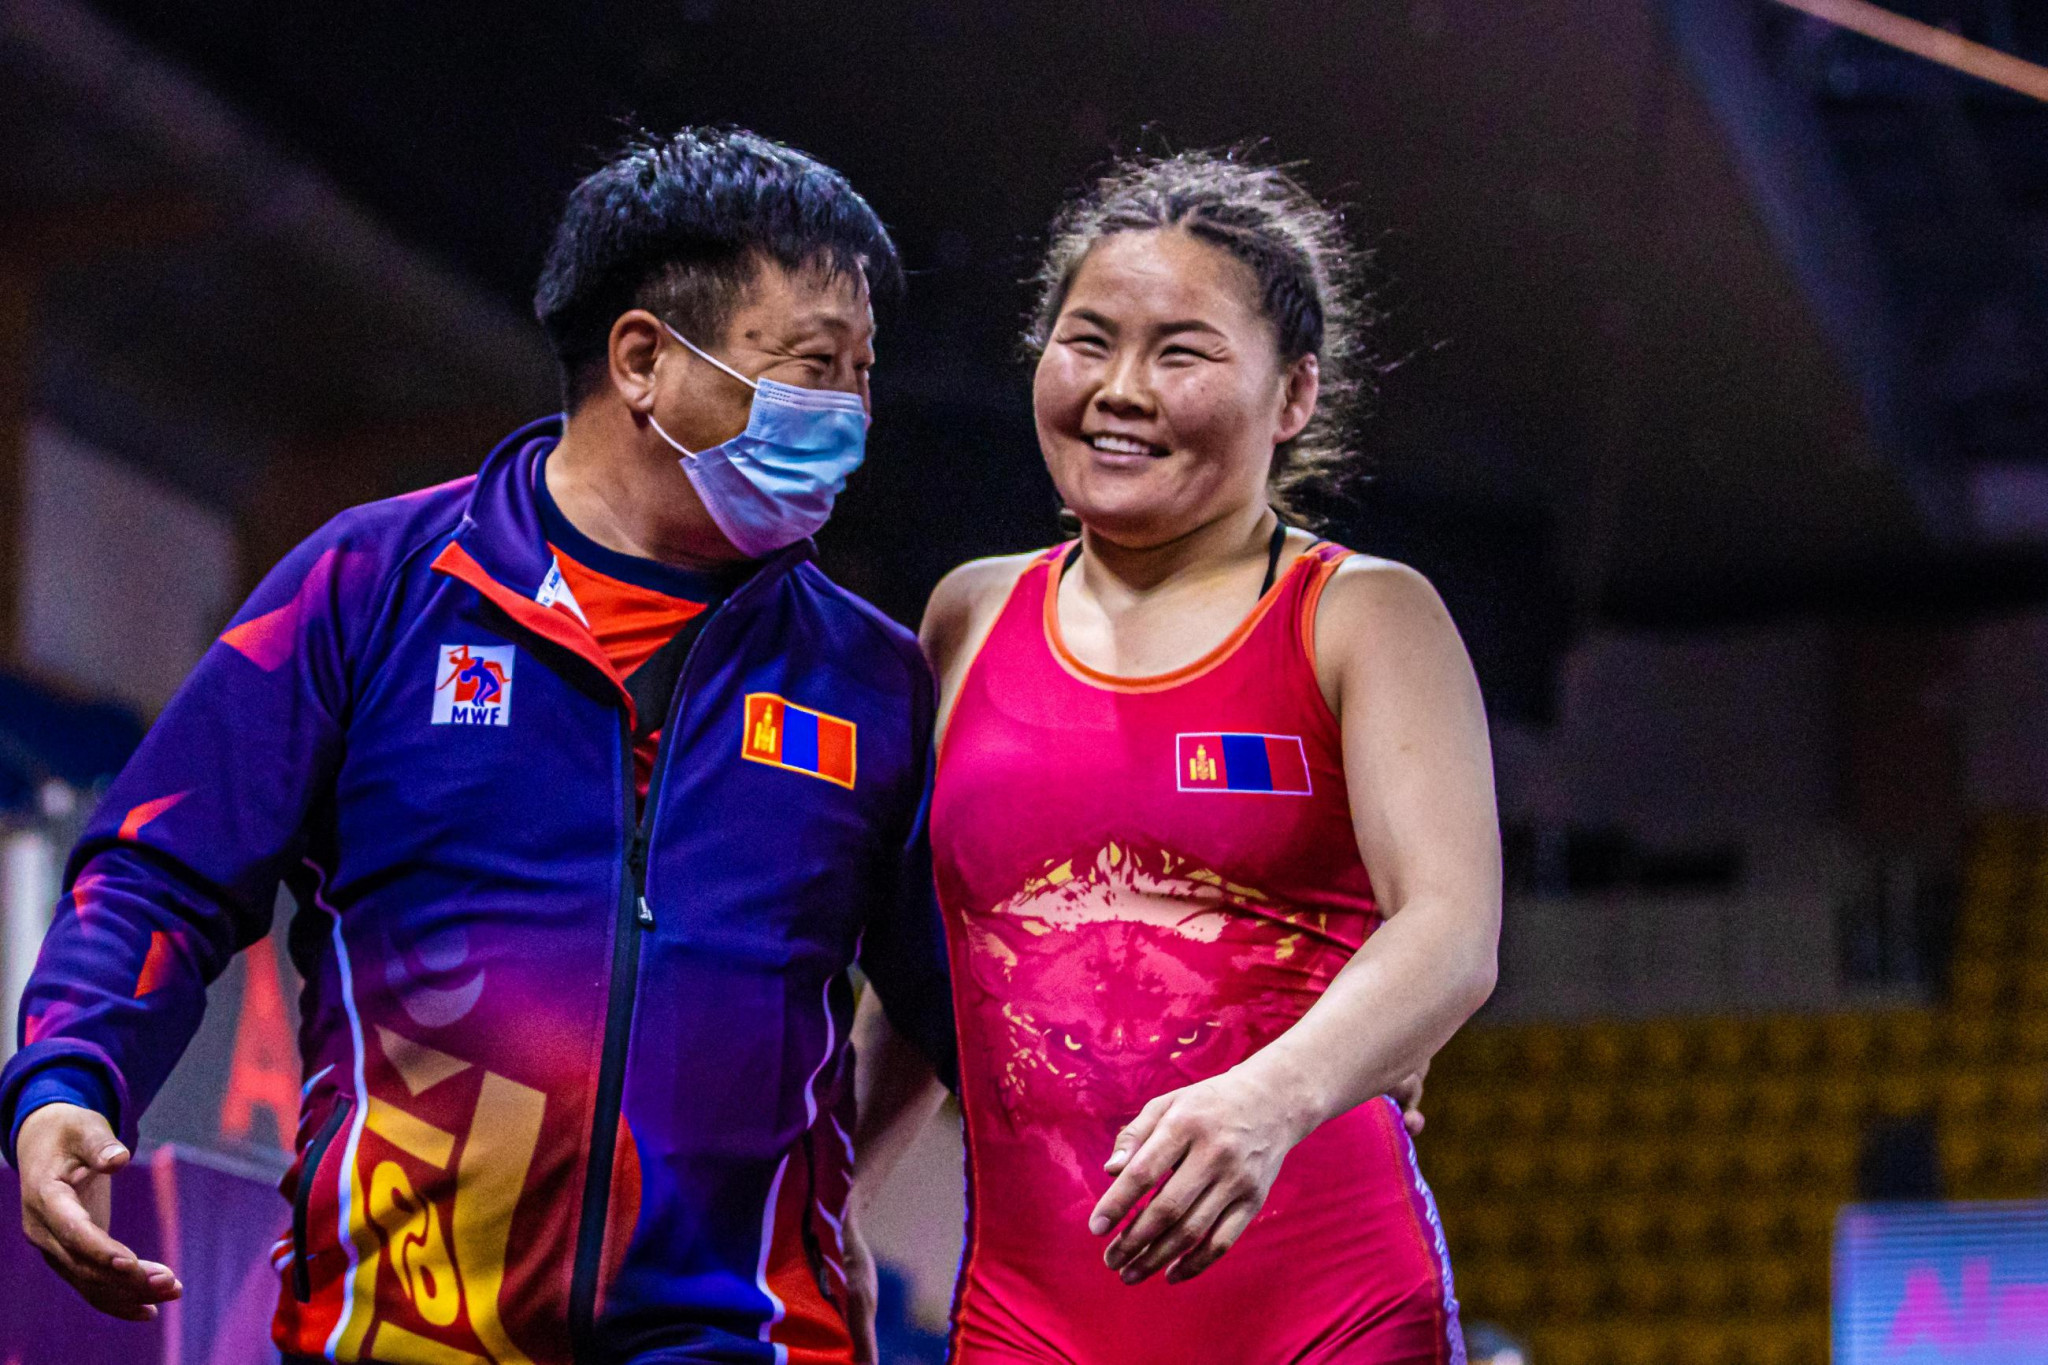 Mongolia's Bolortungalag Zorigt won her first UWW Asian title by defeating India's Rio 2016 bronze medallist in Almaty today ©UWW